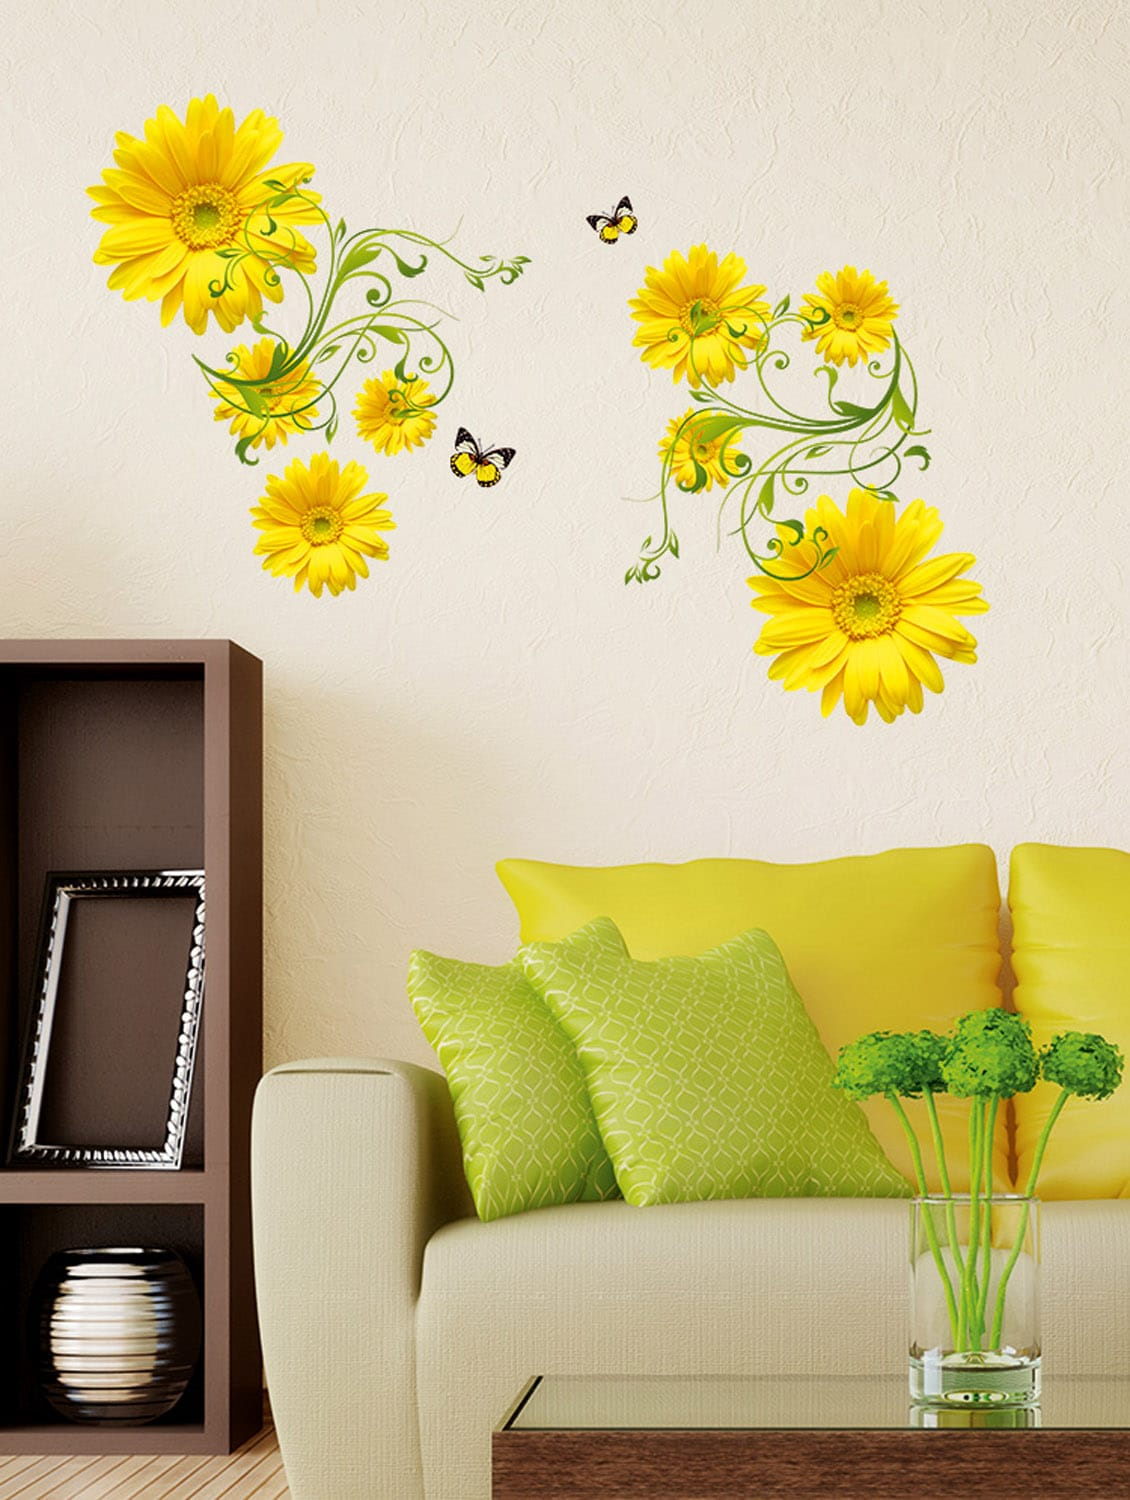 Buy wall stickers flowers yellow daisy with green vine wall art design living room office decor for unisex from stikerskart for ₹199 at 50 off 2019